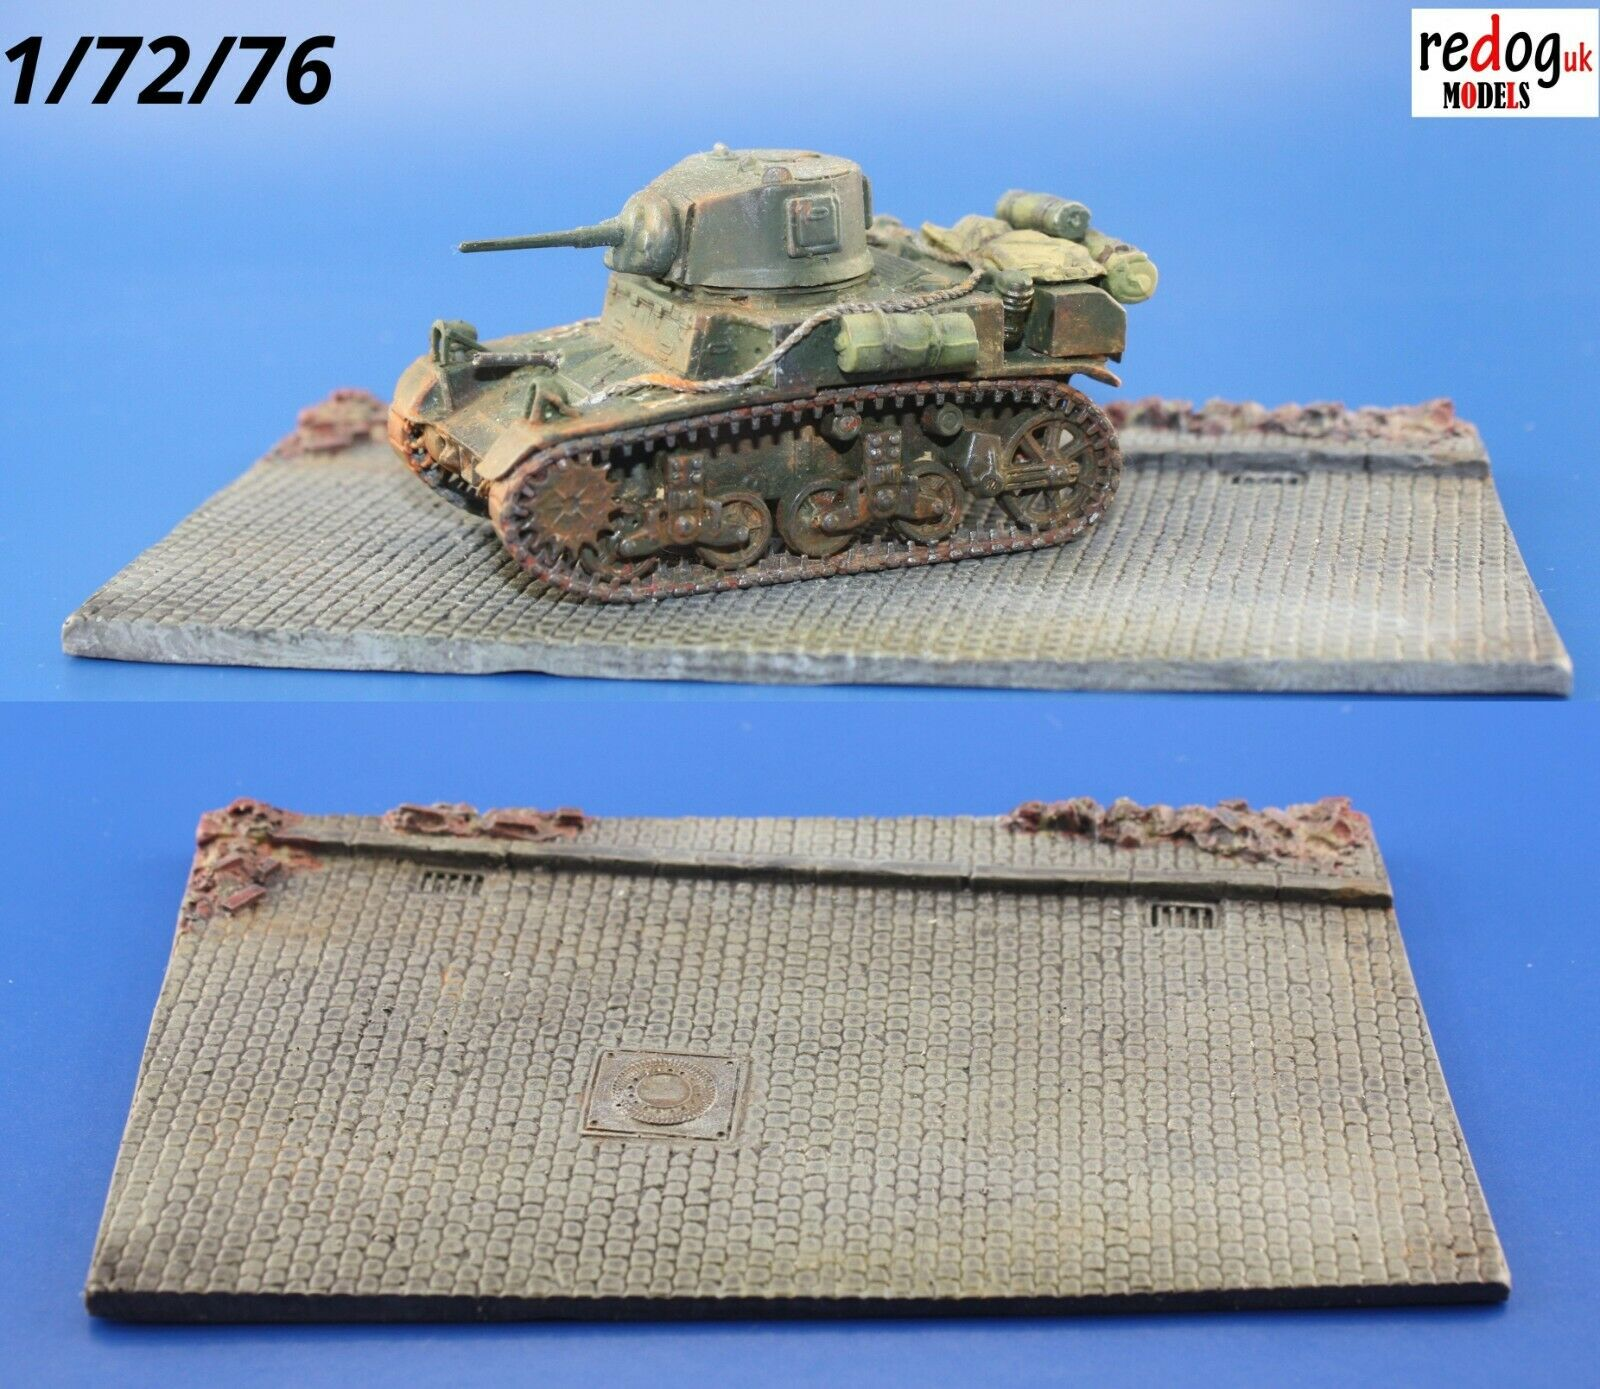 1:72  Paved Road Diorama Resin Base for Military Scale Model Vehicles D2 - redoguk